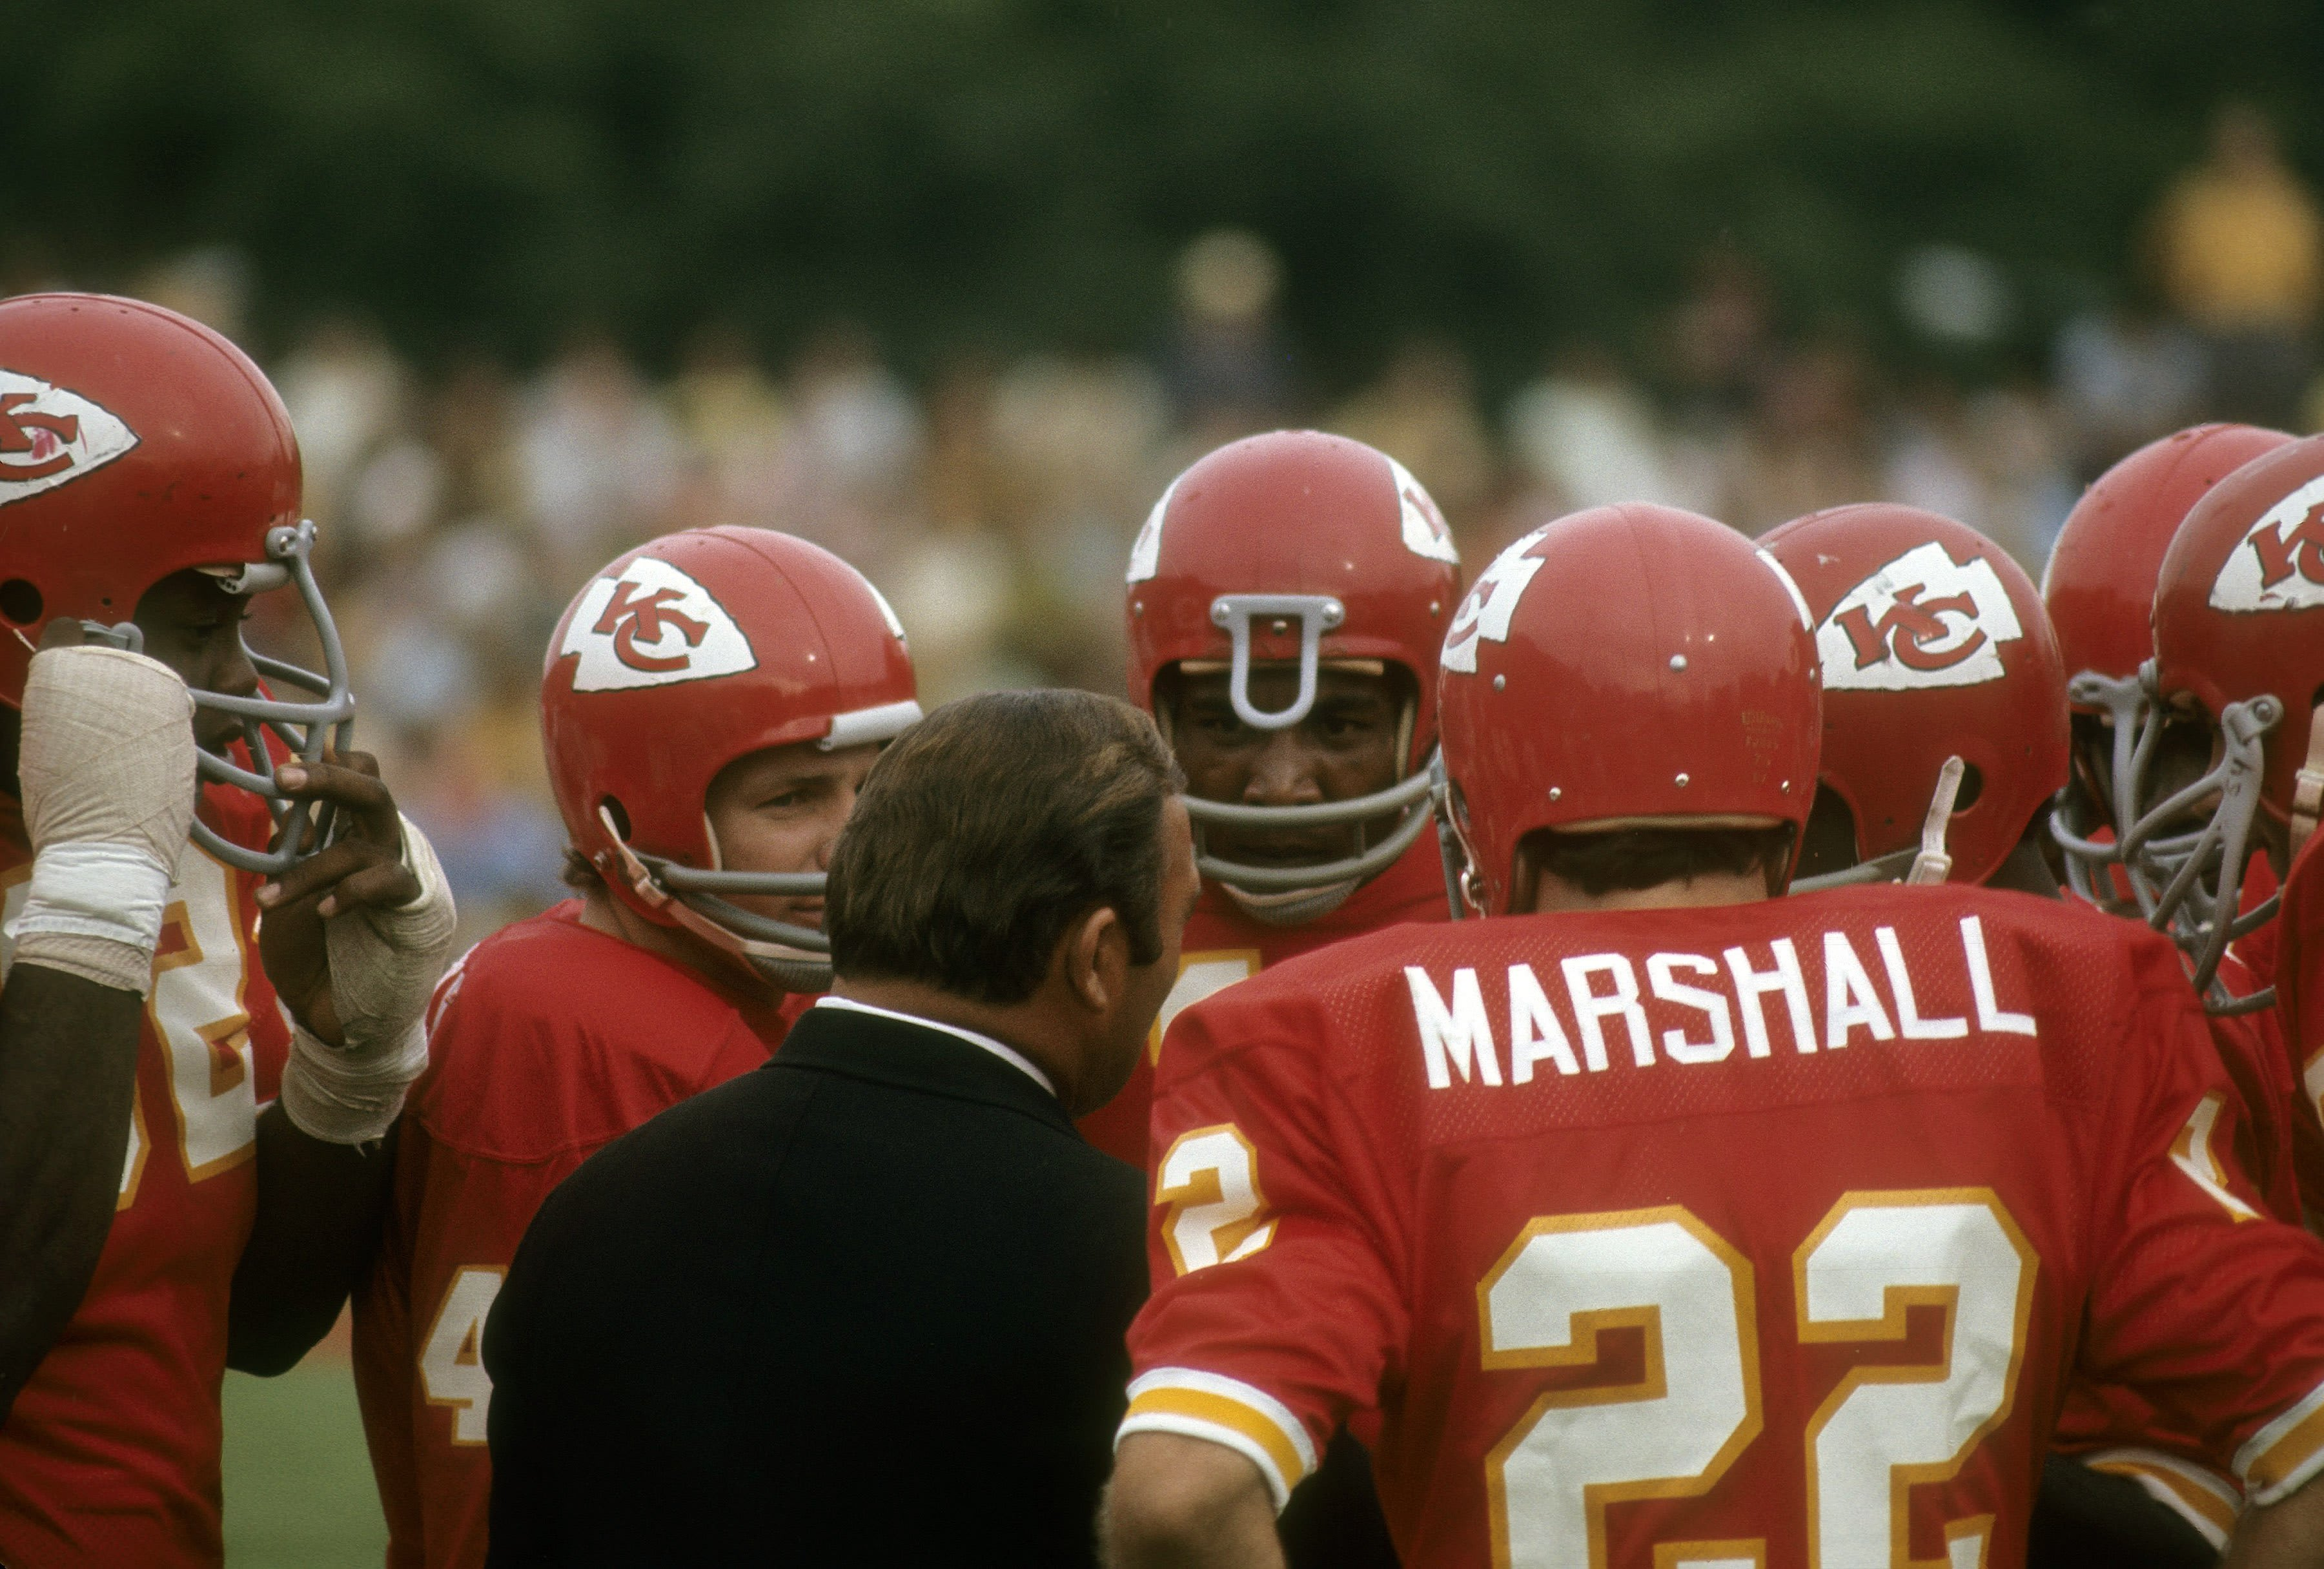 Head Coach Hank Stram of the Kansas City Chiefs (Photo by Focus on Sport/Getty Images)